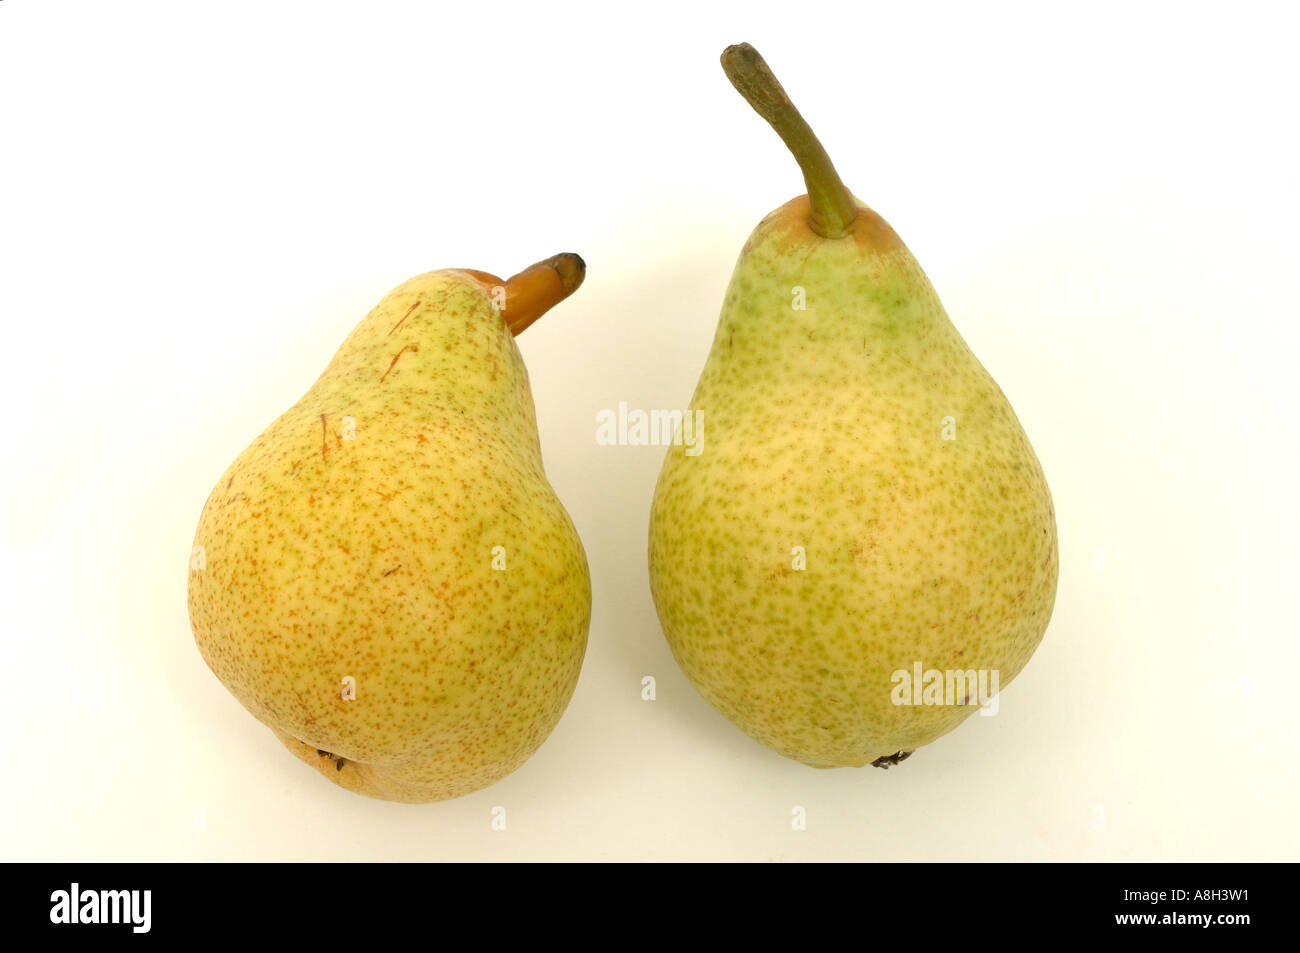 Green Williams pears supermarket bought and in normal shop condition - Stock Image